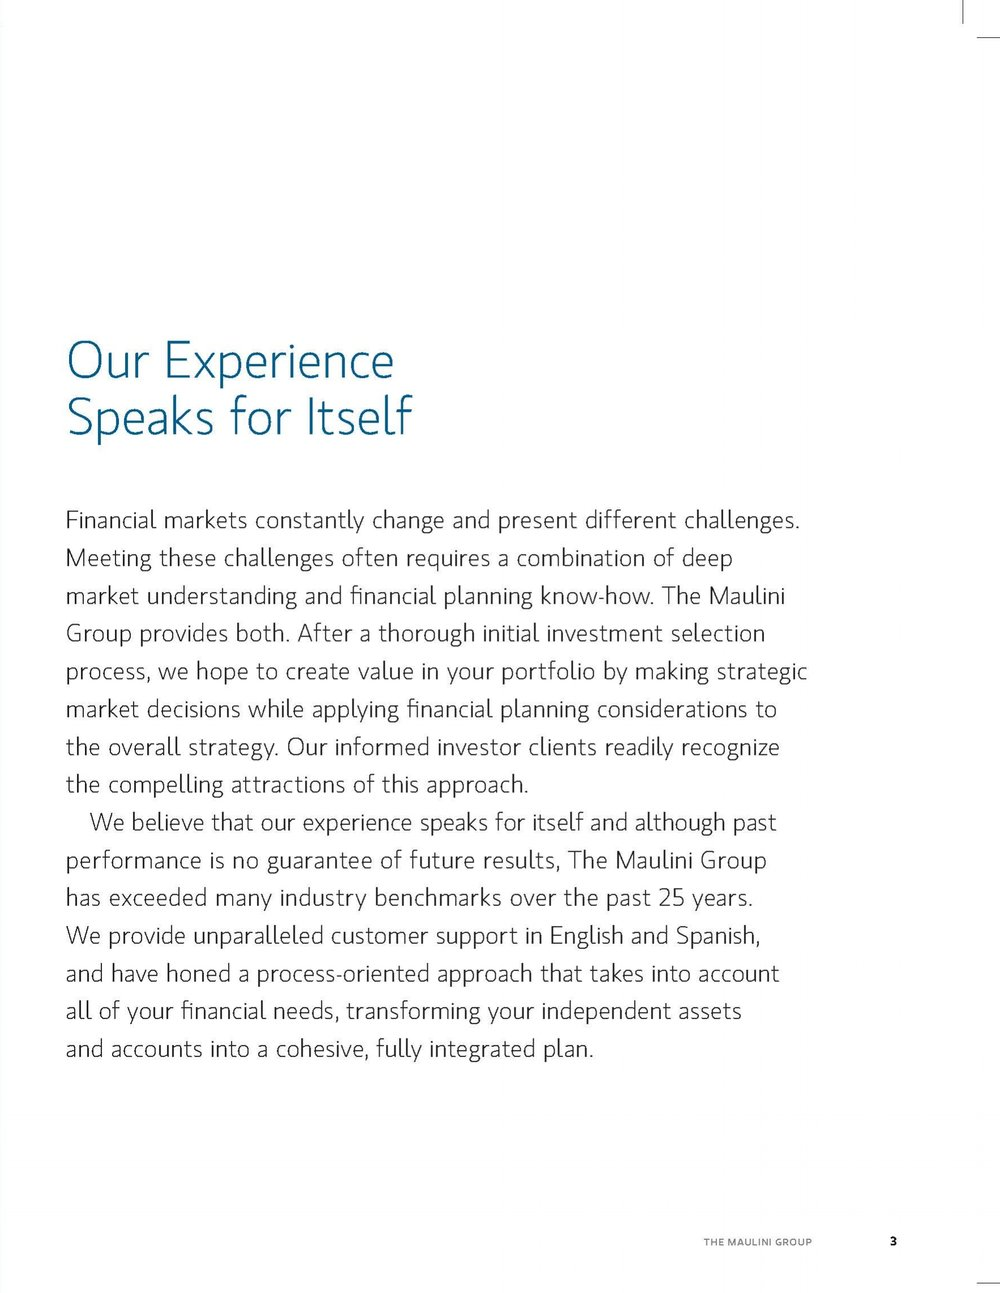 2. The Maulini Group Morgan Stanley_Page_03.jpg